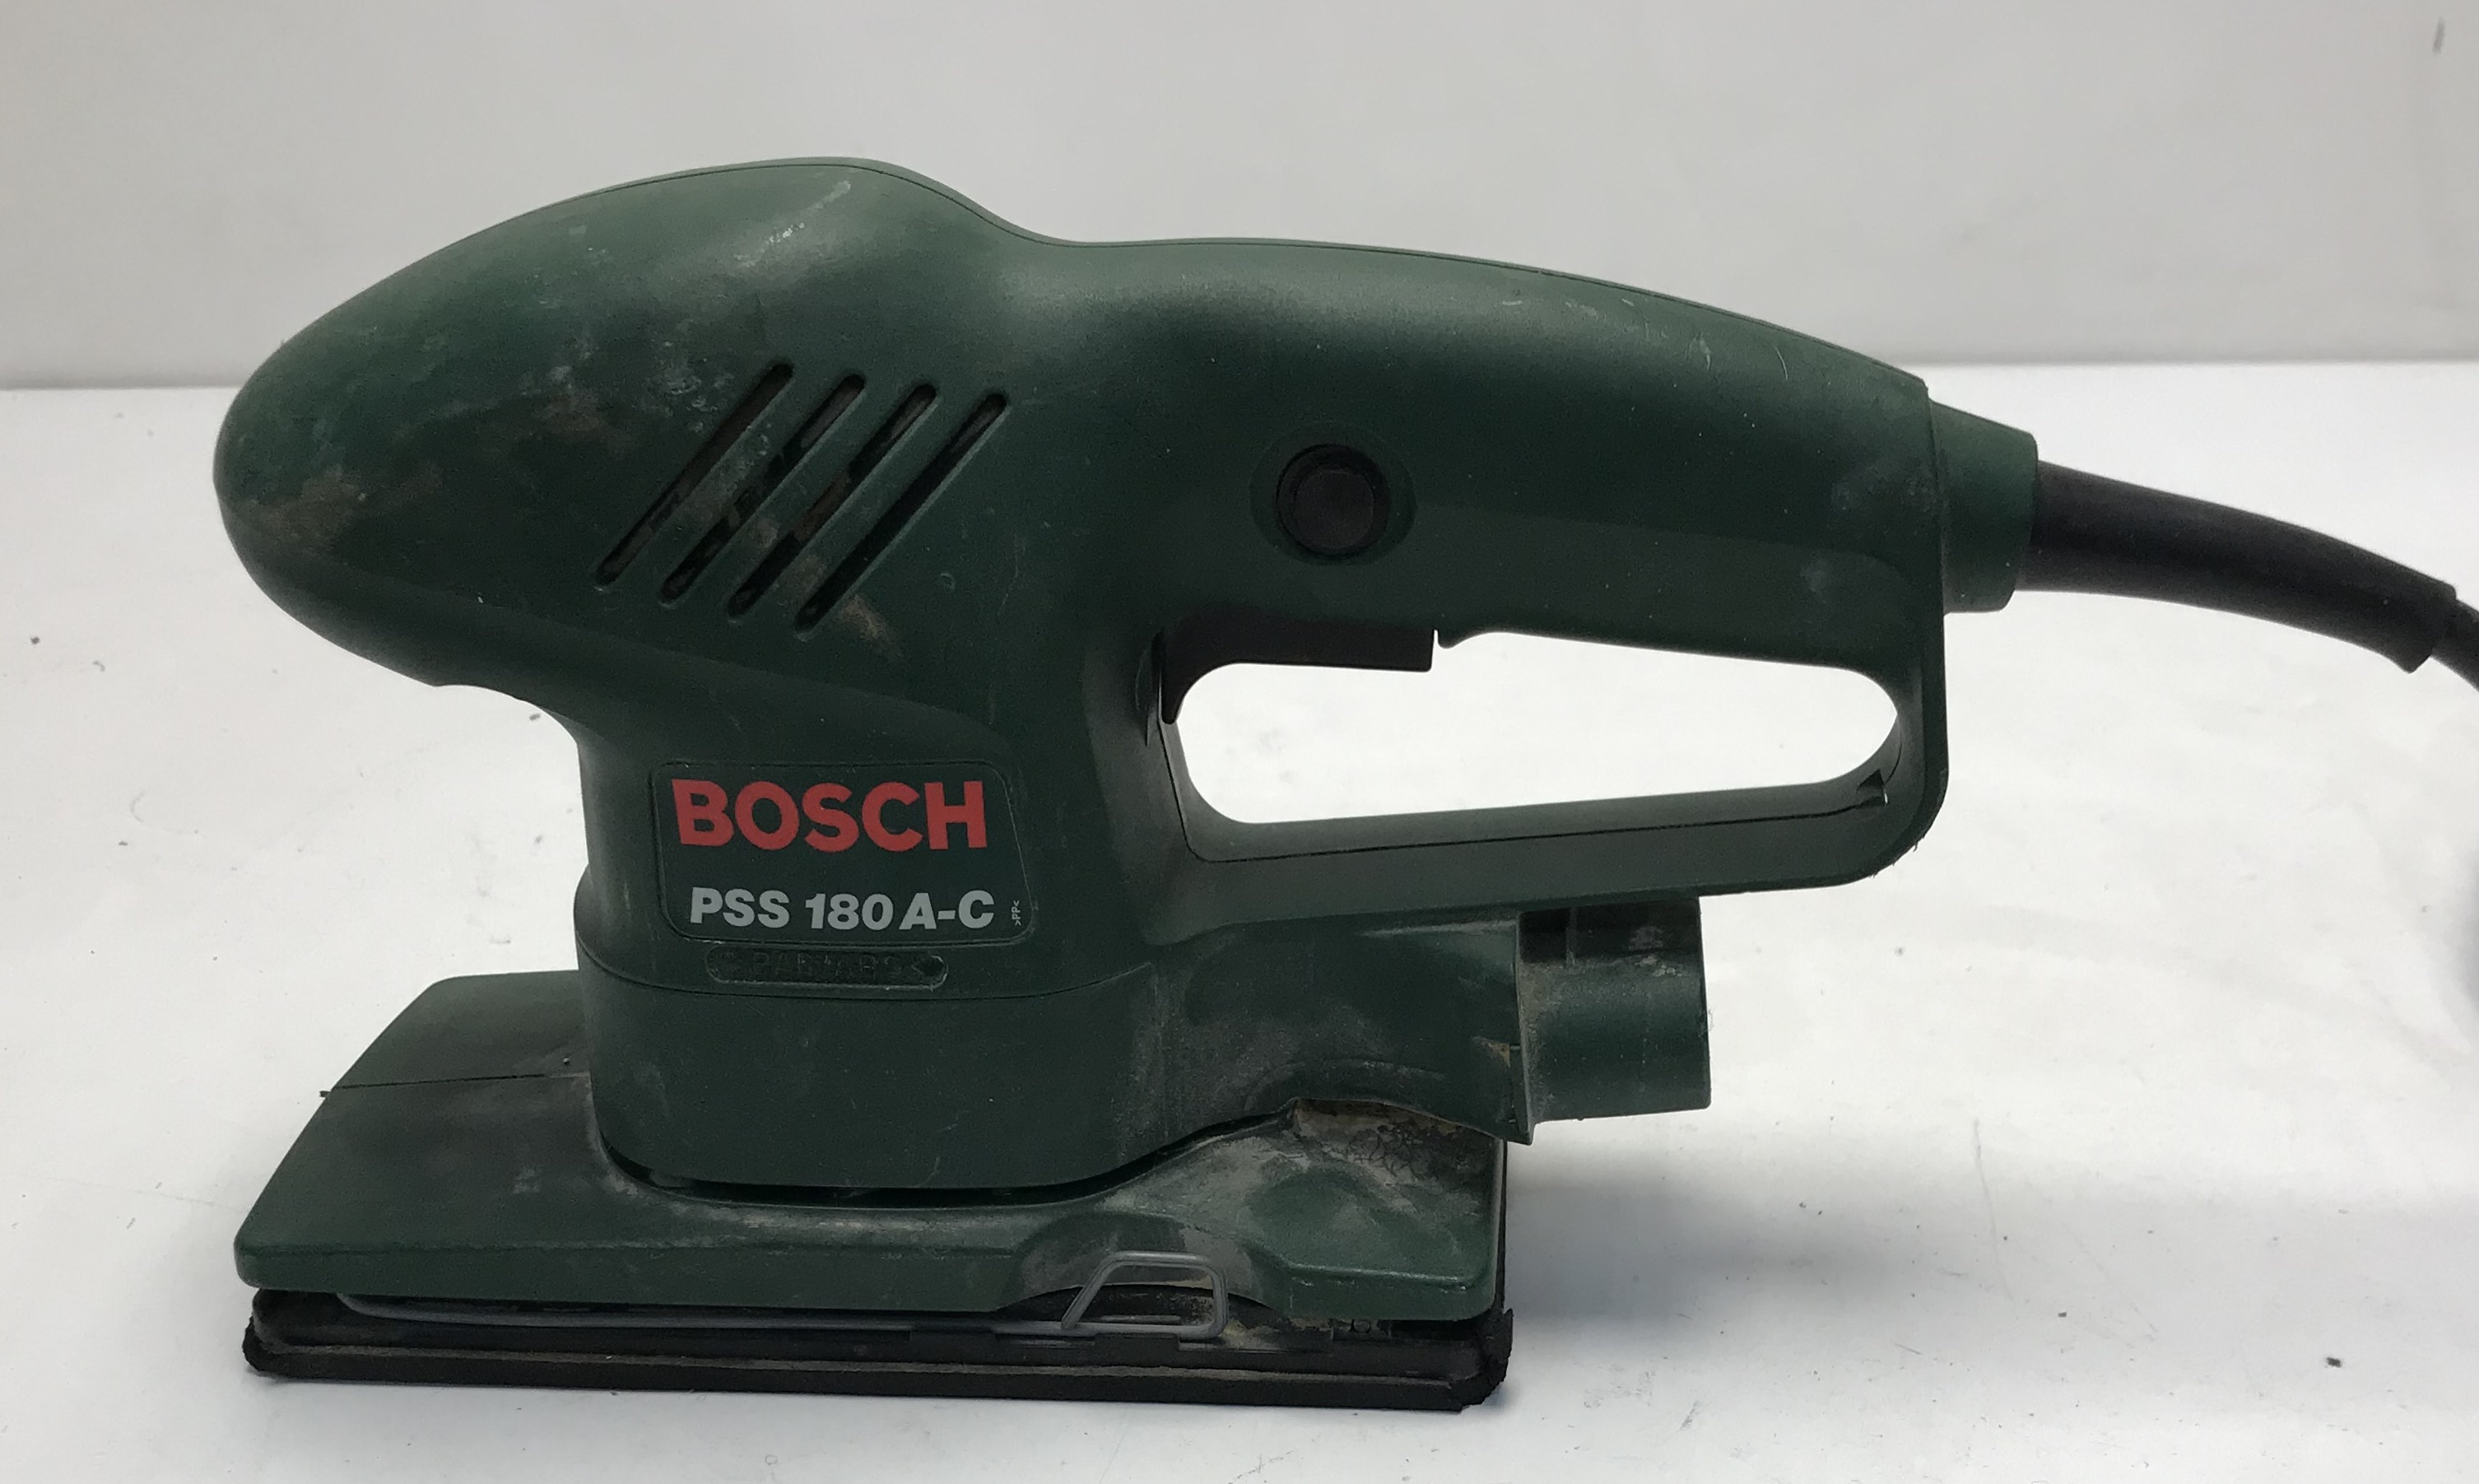 Bosch Orbital Sander - Lot 1117701 | ALLBIDS